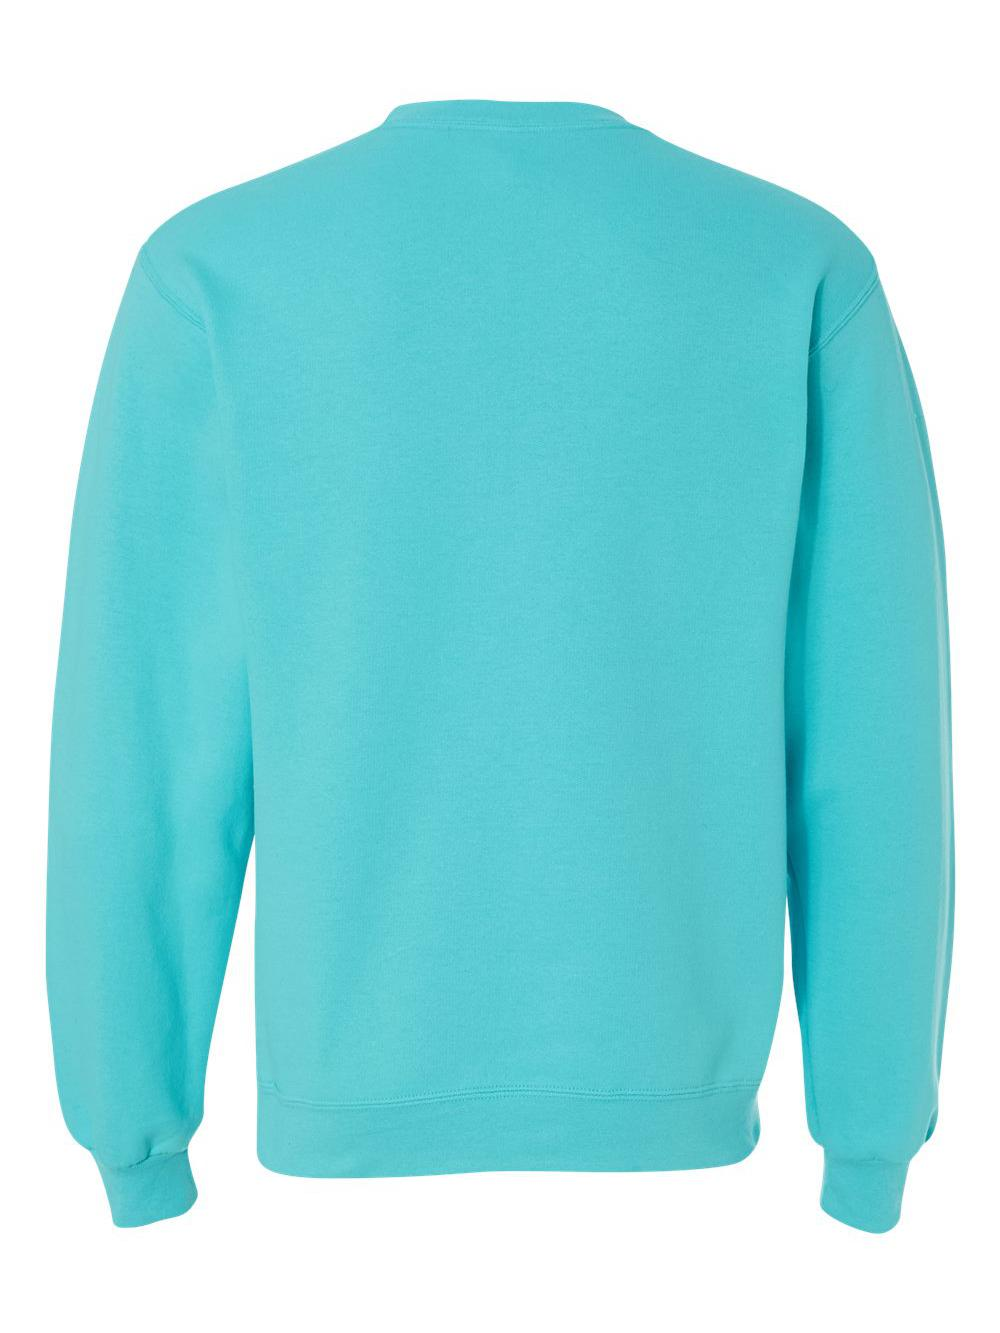 Fruit-of-the-Loom-Sofspun-Crewneck-Sweatshirt-SF72R thumbnail 22